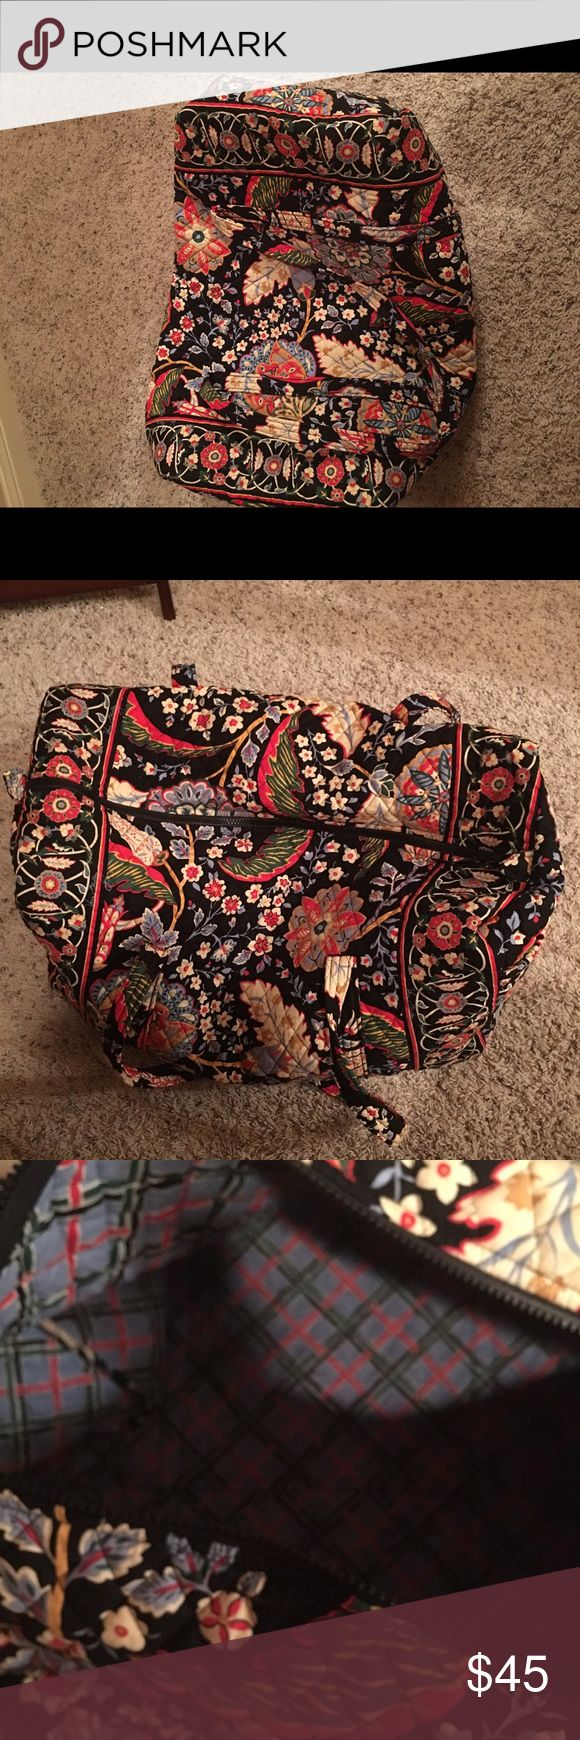 Vera Bradley Travel Bag Never used, brand new Vera Bradley travel bag! Perfect condition. Vera Bradley Bags Travel Bags